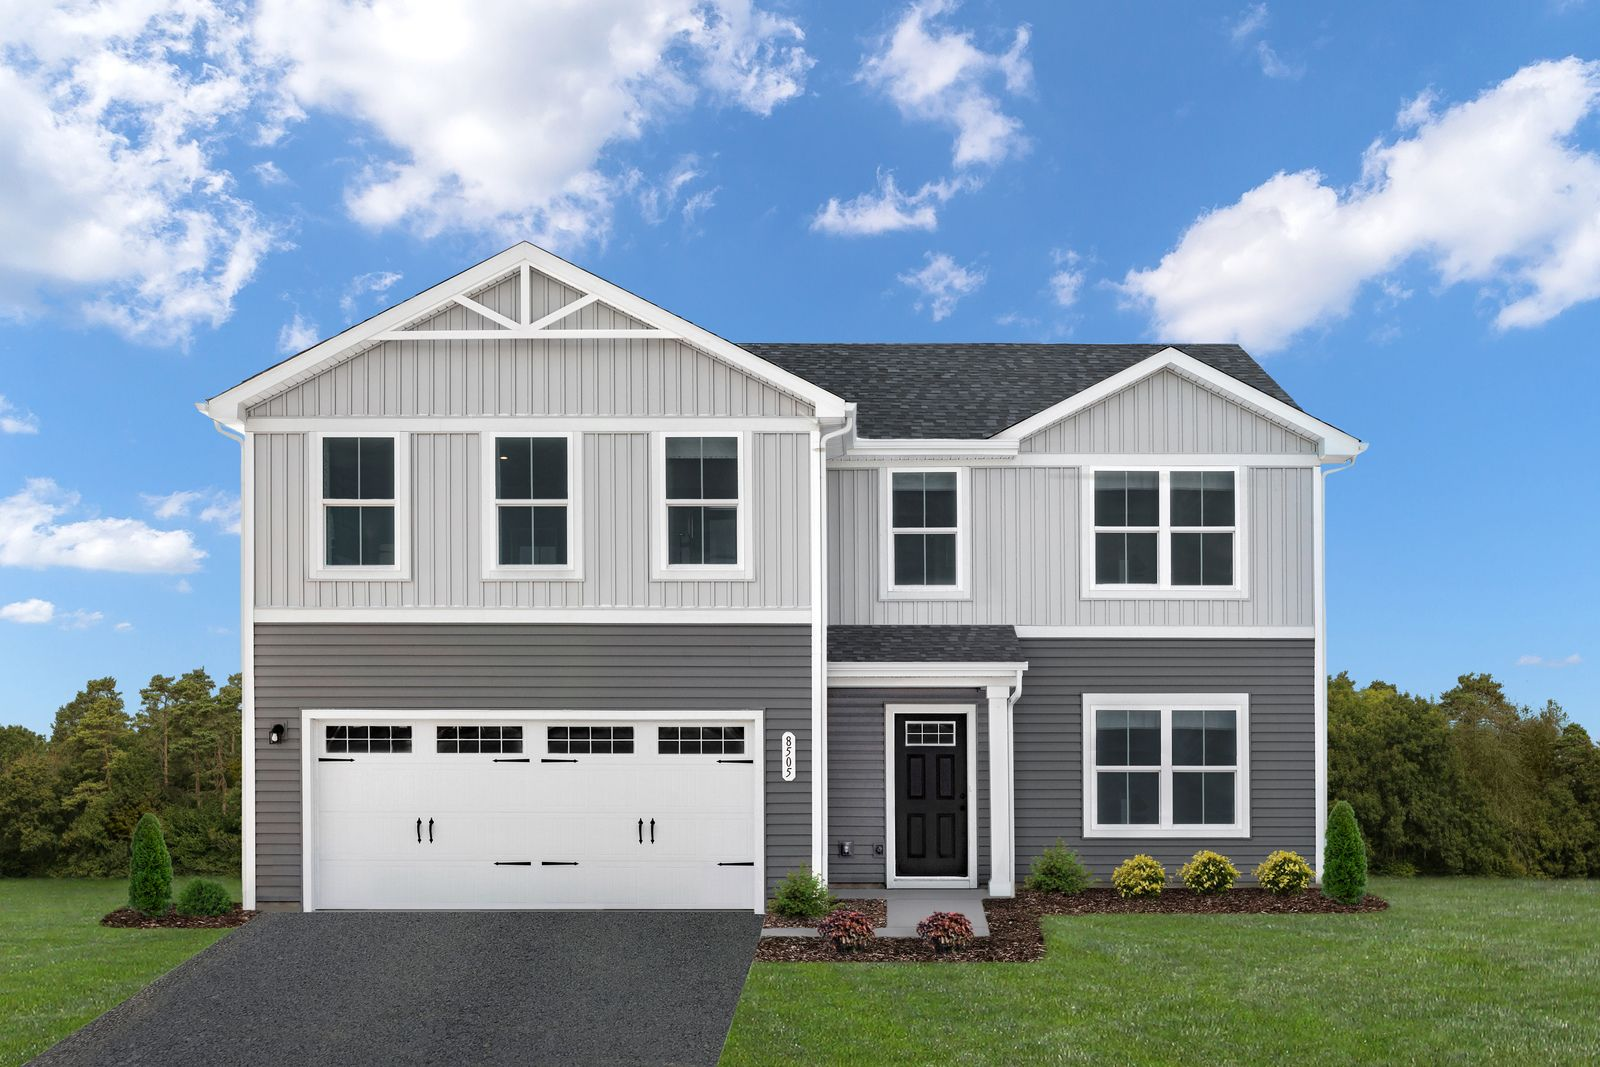 WELCOME HOME TO TAYLORS RIDGE IN STRASBURG, VA! ONLY 1 HOMESITE REMAINING!